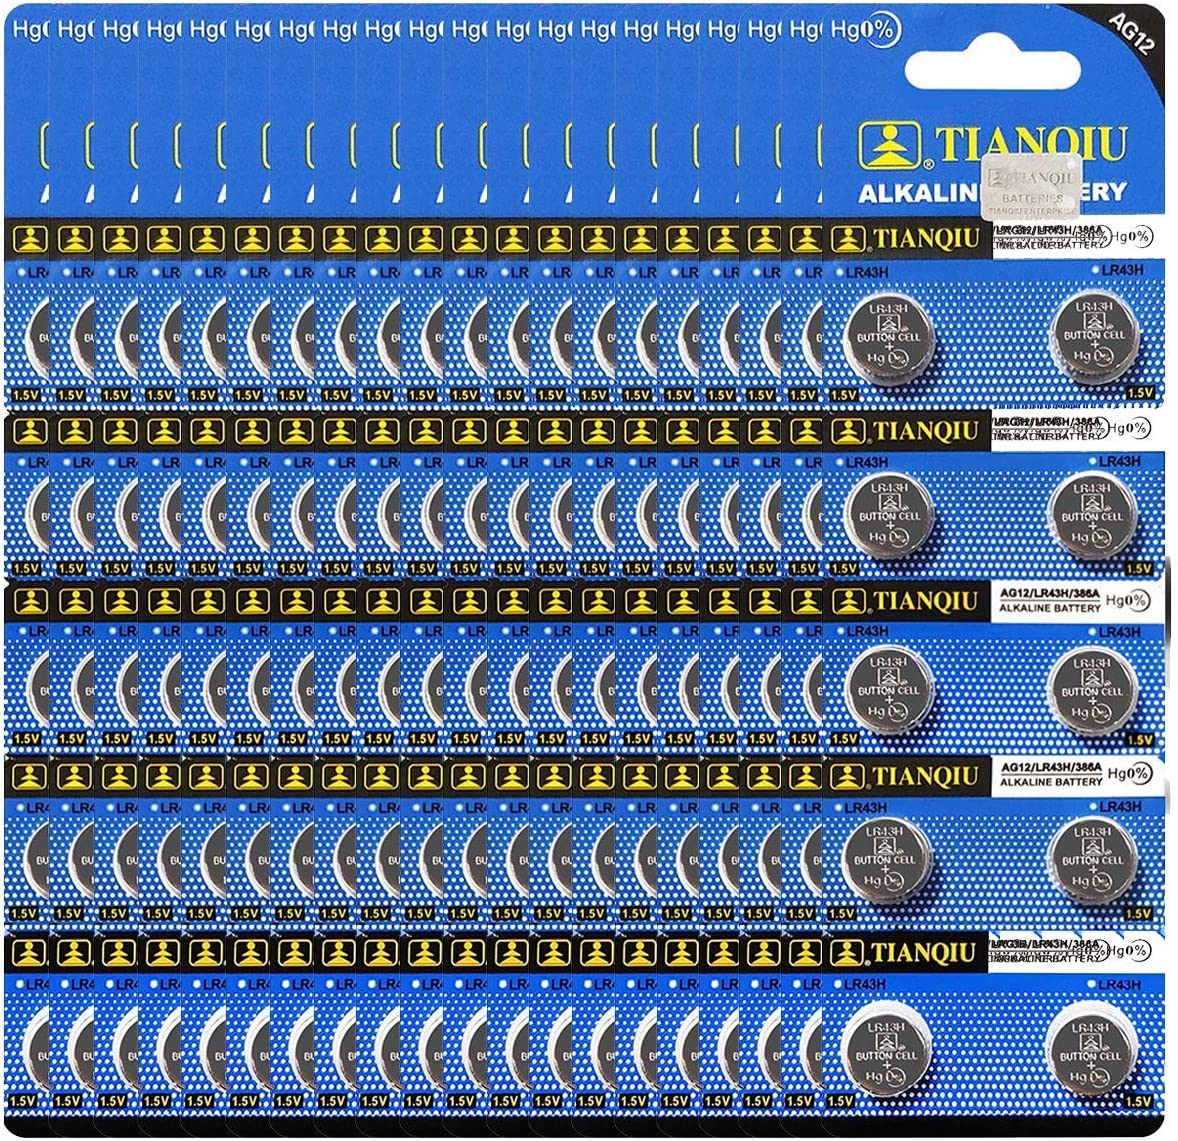 Tianqiu LR43 Kansas City Mall AG12 386A Opening large release sale Alkaline 1.5V Ba 200 Cell Button Battery